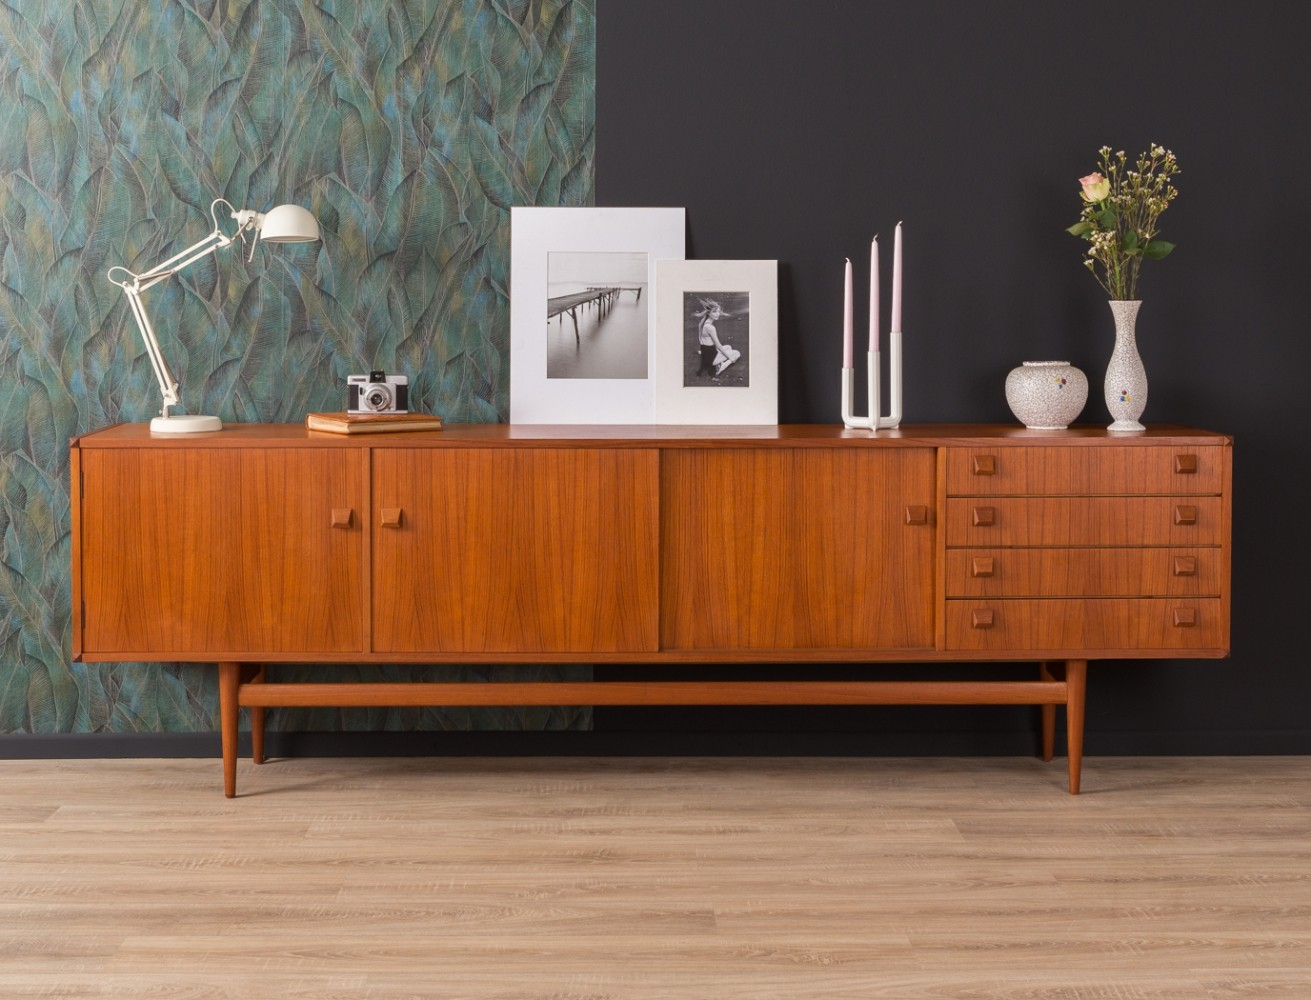 German Sideboard by Musterring from the 1950s